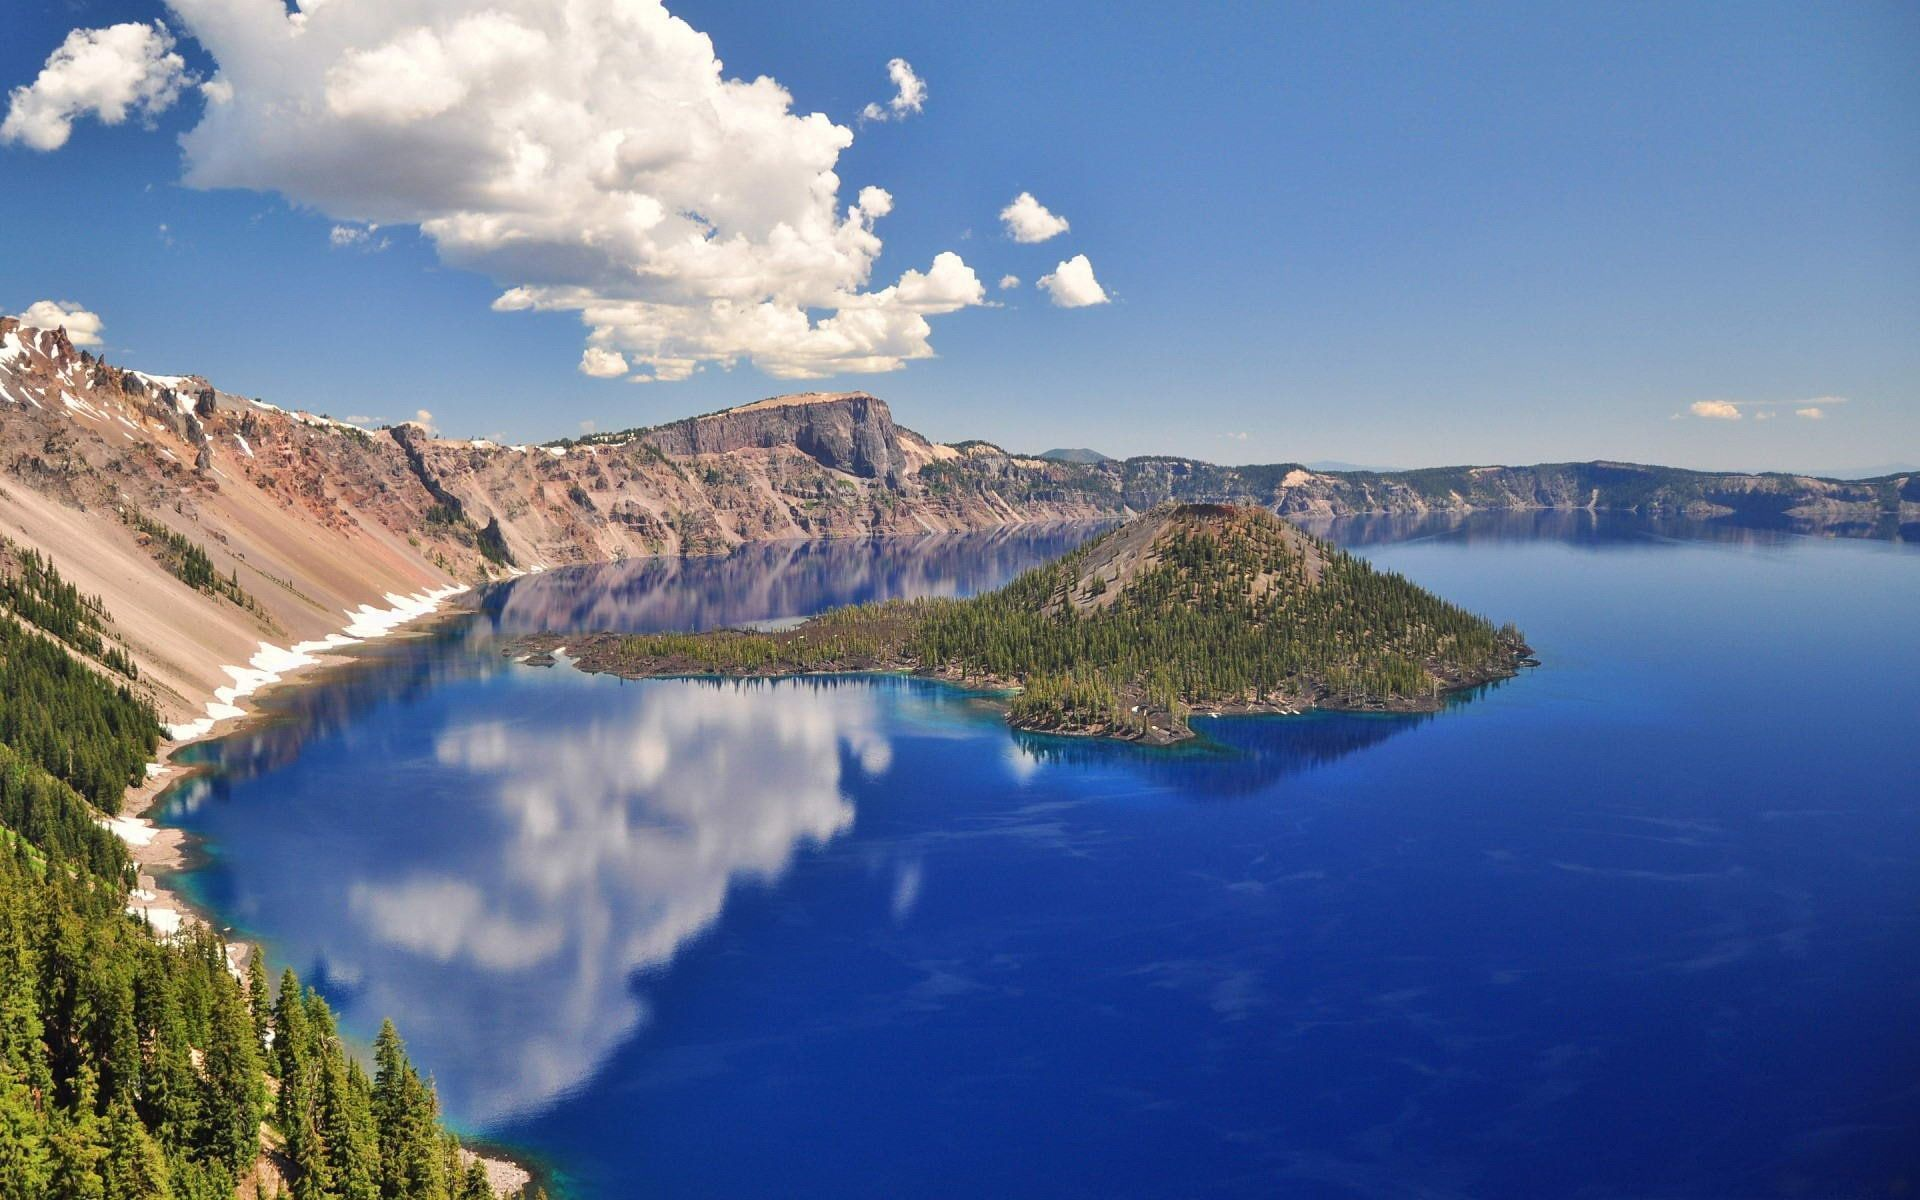 Crater Lake (Oregon) crater lake #lake #Oregon #nature #reflection #sky #clouds #1080P #wallpaper #hdwallpaper #desktop #craterlakeoregon Crater Lake (Oregon) crater lake #lake #Oregon #nature #reflection #sky #clouds #1080P #wallpaper #hdwallpaper #desktop #craterlakeoregon Crater Lake (Oregon) crater lake #lake #Oregon #nature #reflection #sky #clouds #1080P #wallpaper #hdwallpaper #desktop #craterlakeoregon Crater Lake (Oregon) crater lake #lake #Oregon #nature #reflection #sky #clouds #1080P #craterlakeoregon